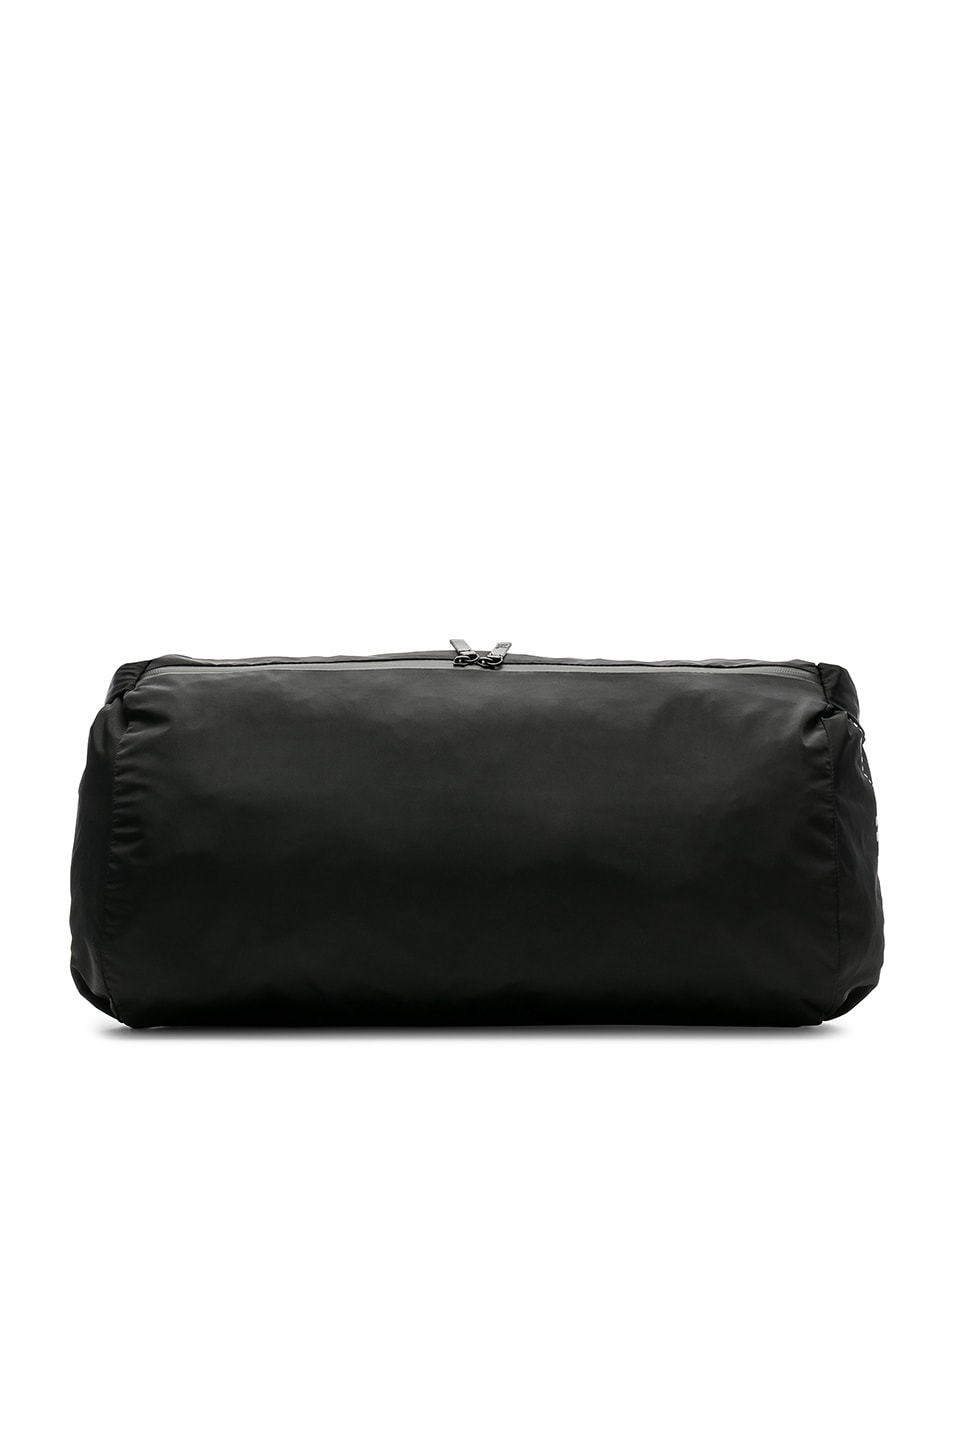 Image 2 of Y-3 Yohji Yamamoto Gym Bag in Black